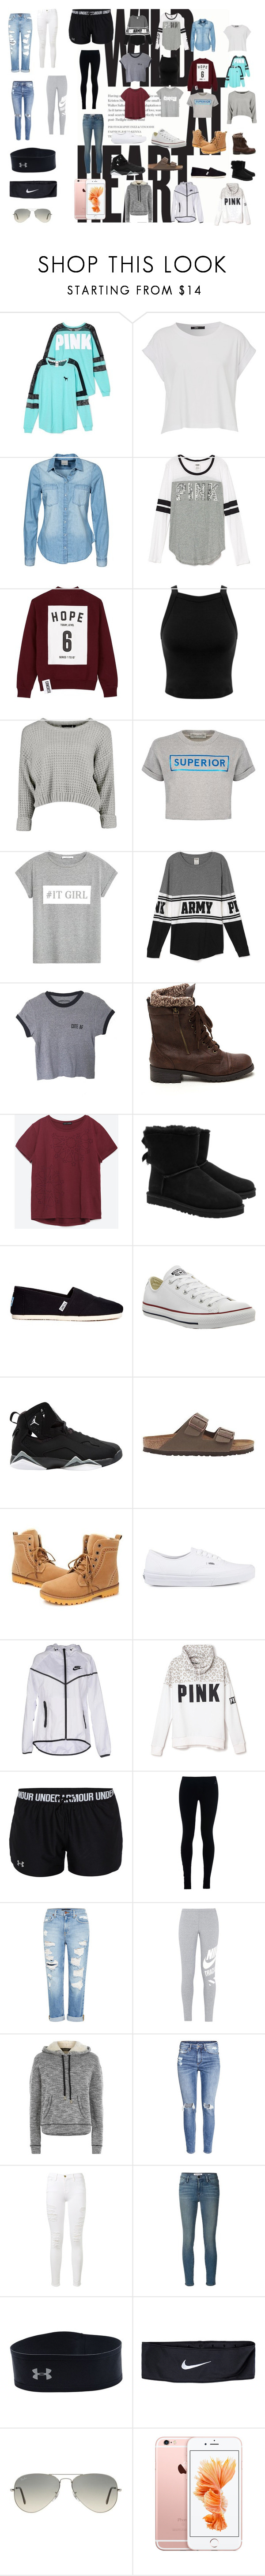 """Wild"" by omg-its-katie ❤ liked on Polyvore featuring Victoria's Secret, Vero Moda, Studio Concrete, Miss Selfridge, Être Cécile, MANGO, Zara, UGG Australia, TOMS and Converse"